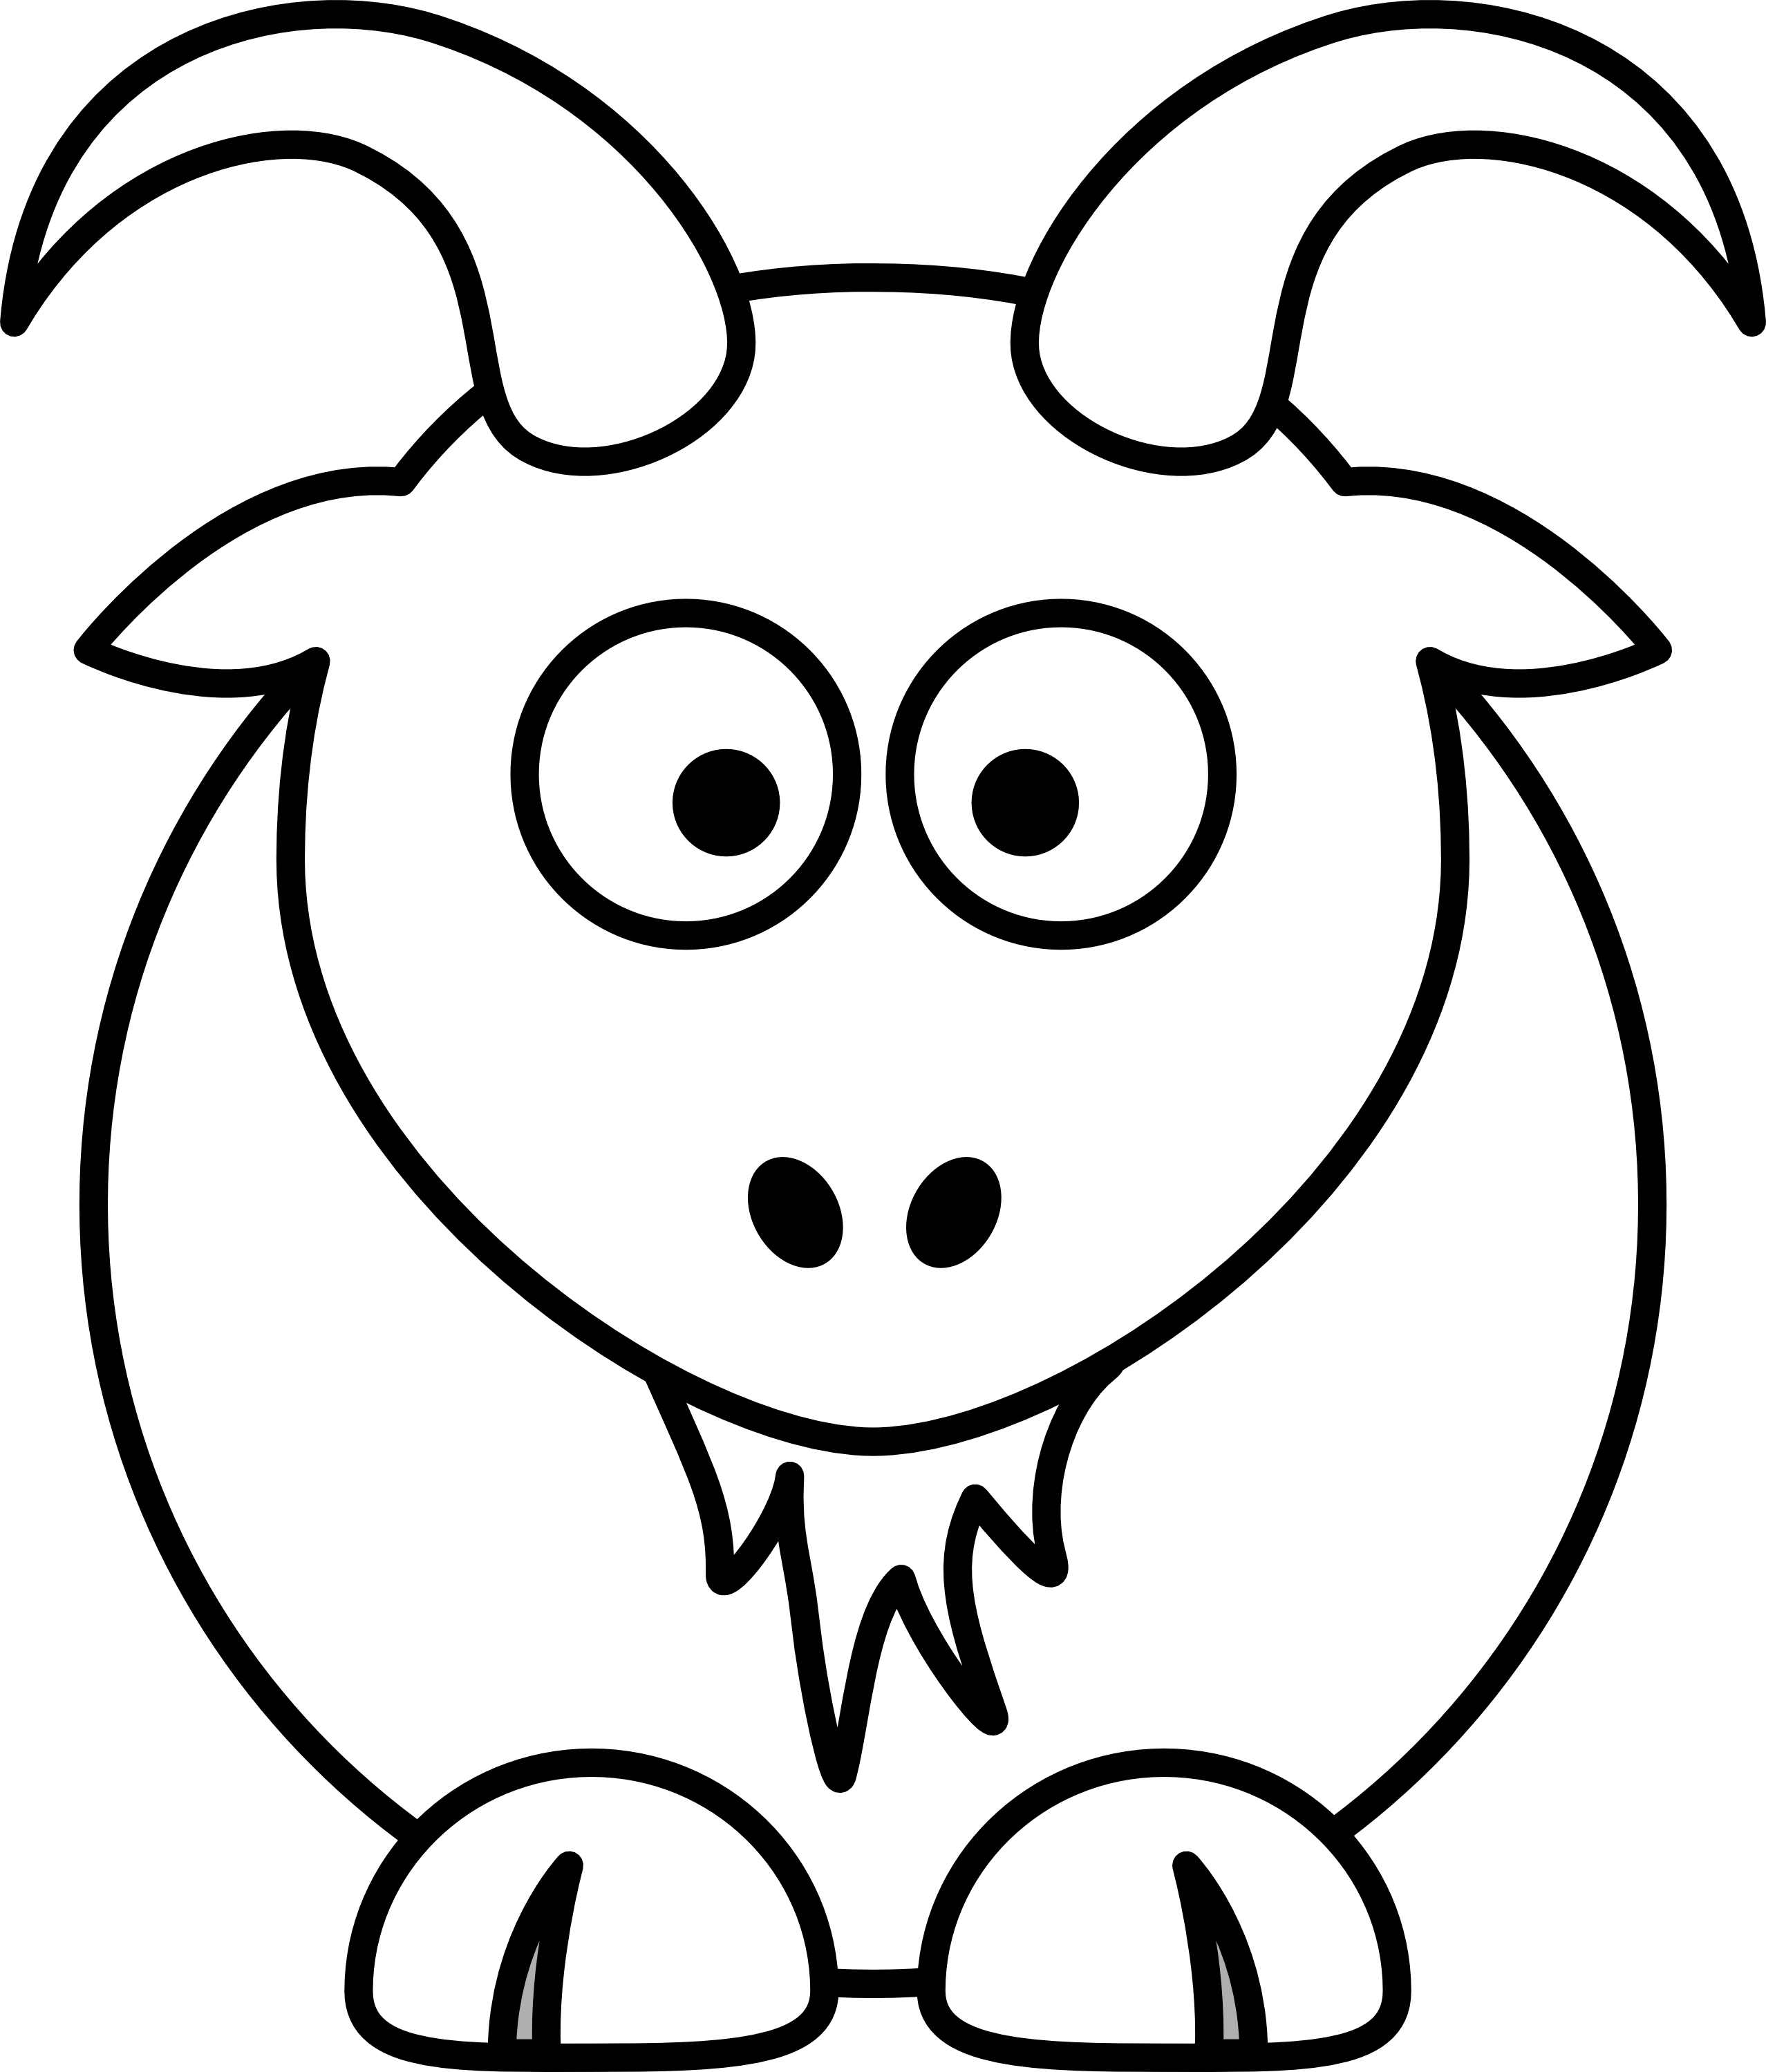 Number 1 clipart animal shape. Animals black and white